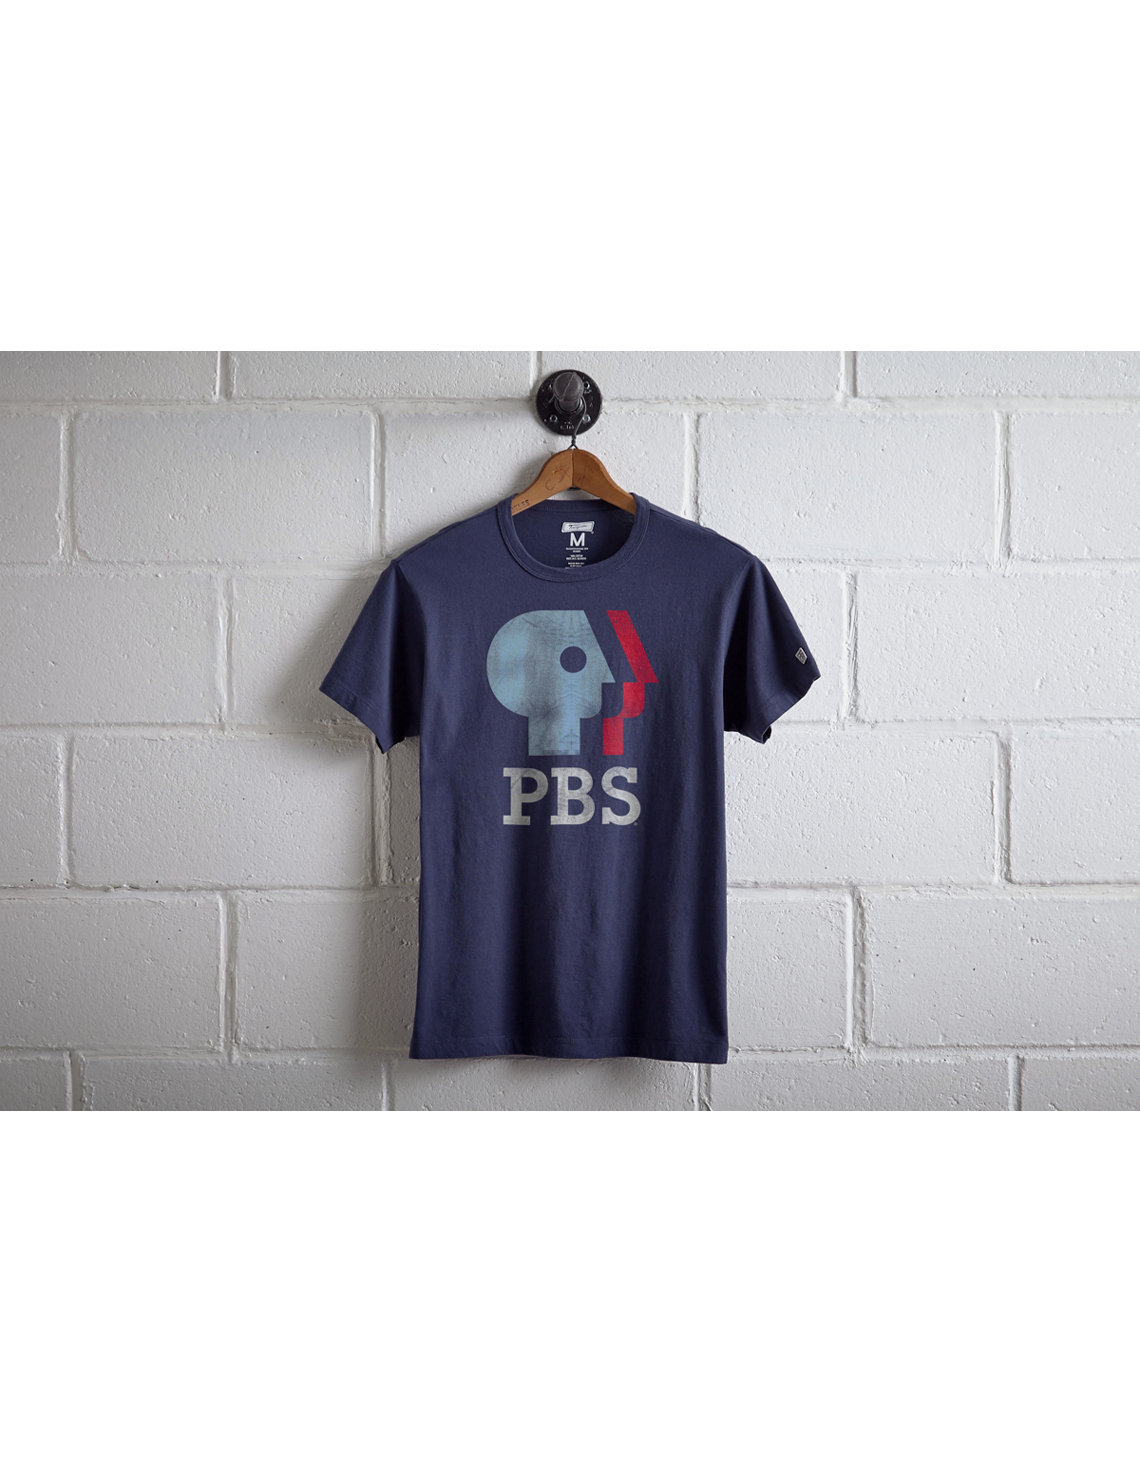 Mens Graphic Tees American Eagle Outfitters Tendencies Longshirt Plain Navy Shirt Tailgate Pbs T